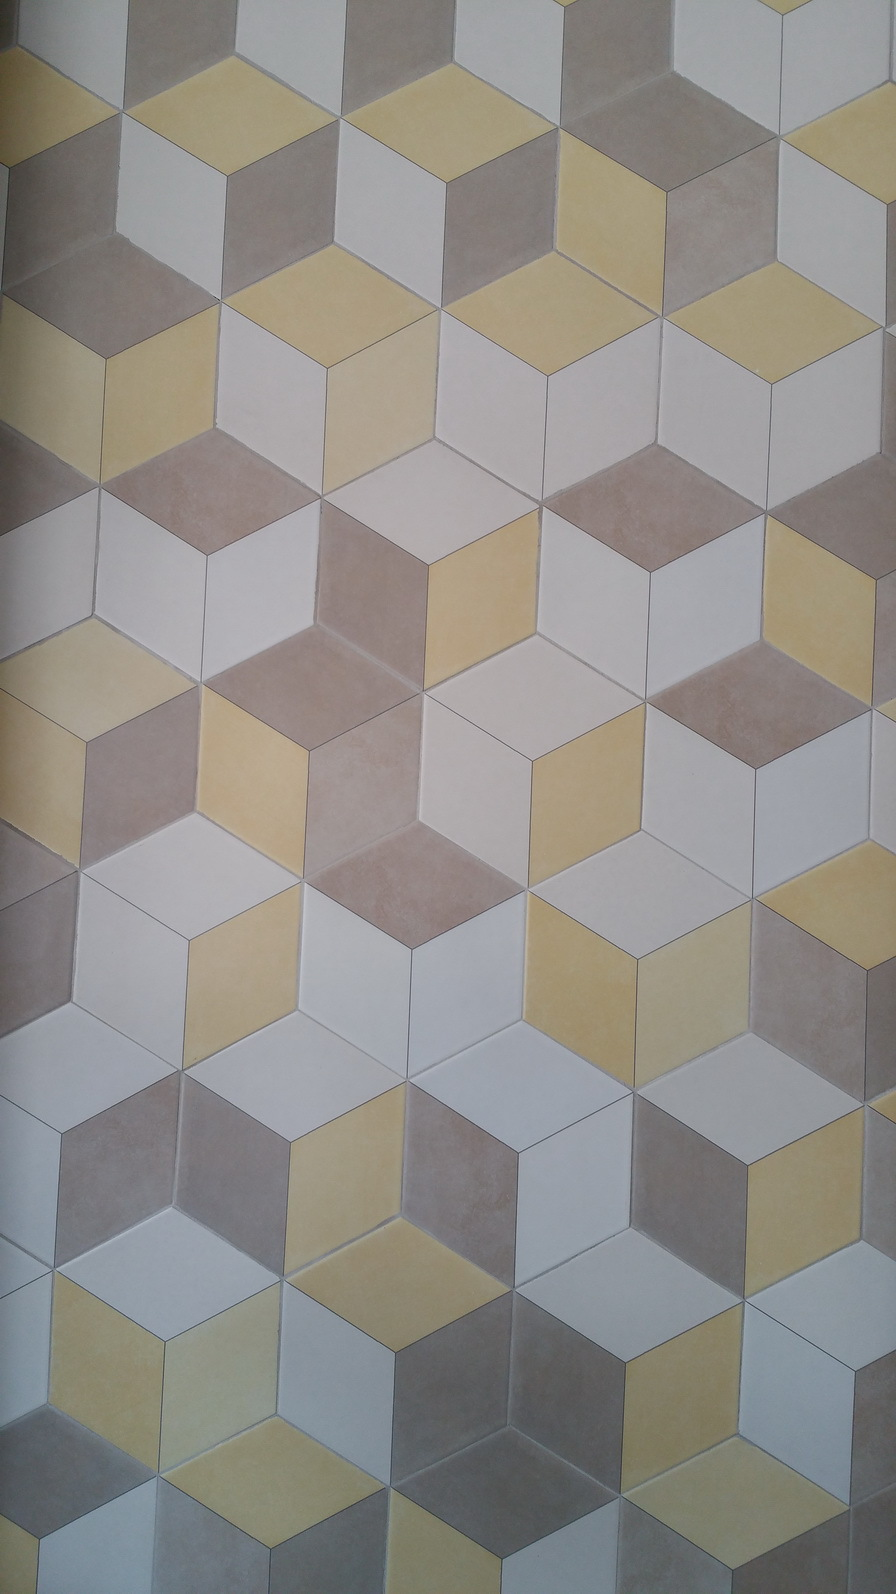 Three Dimensional Hexagon Porcelain Tile For Floor And Wall